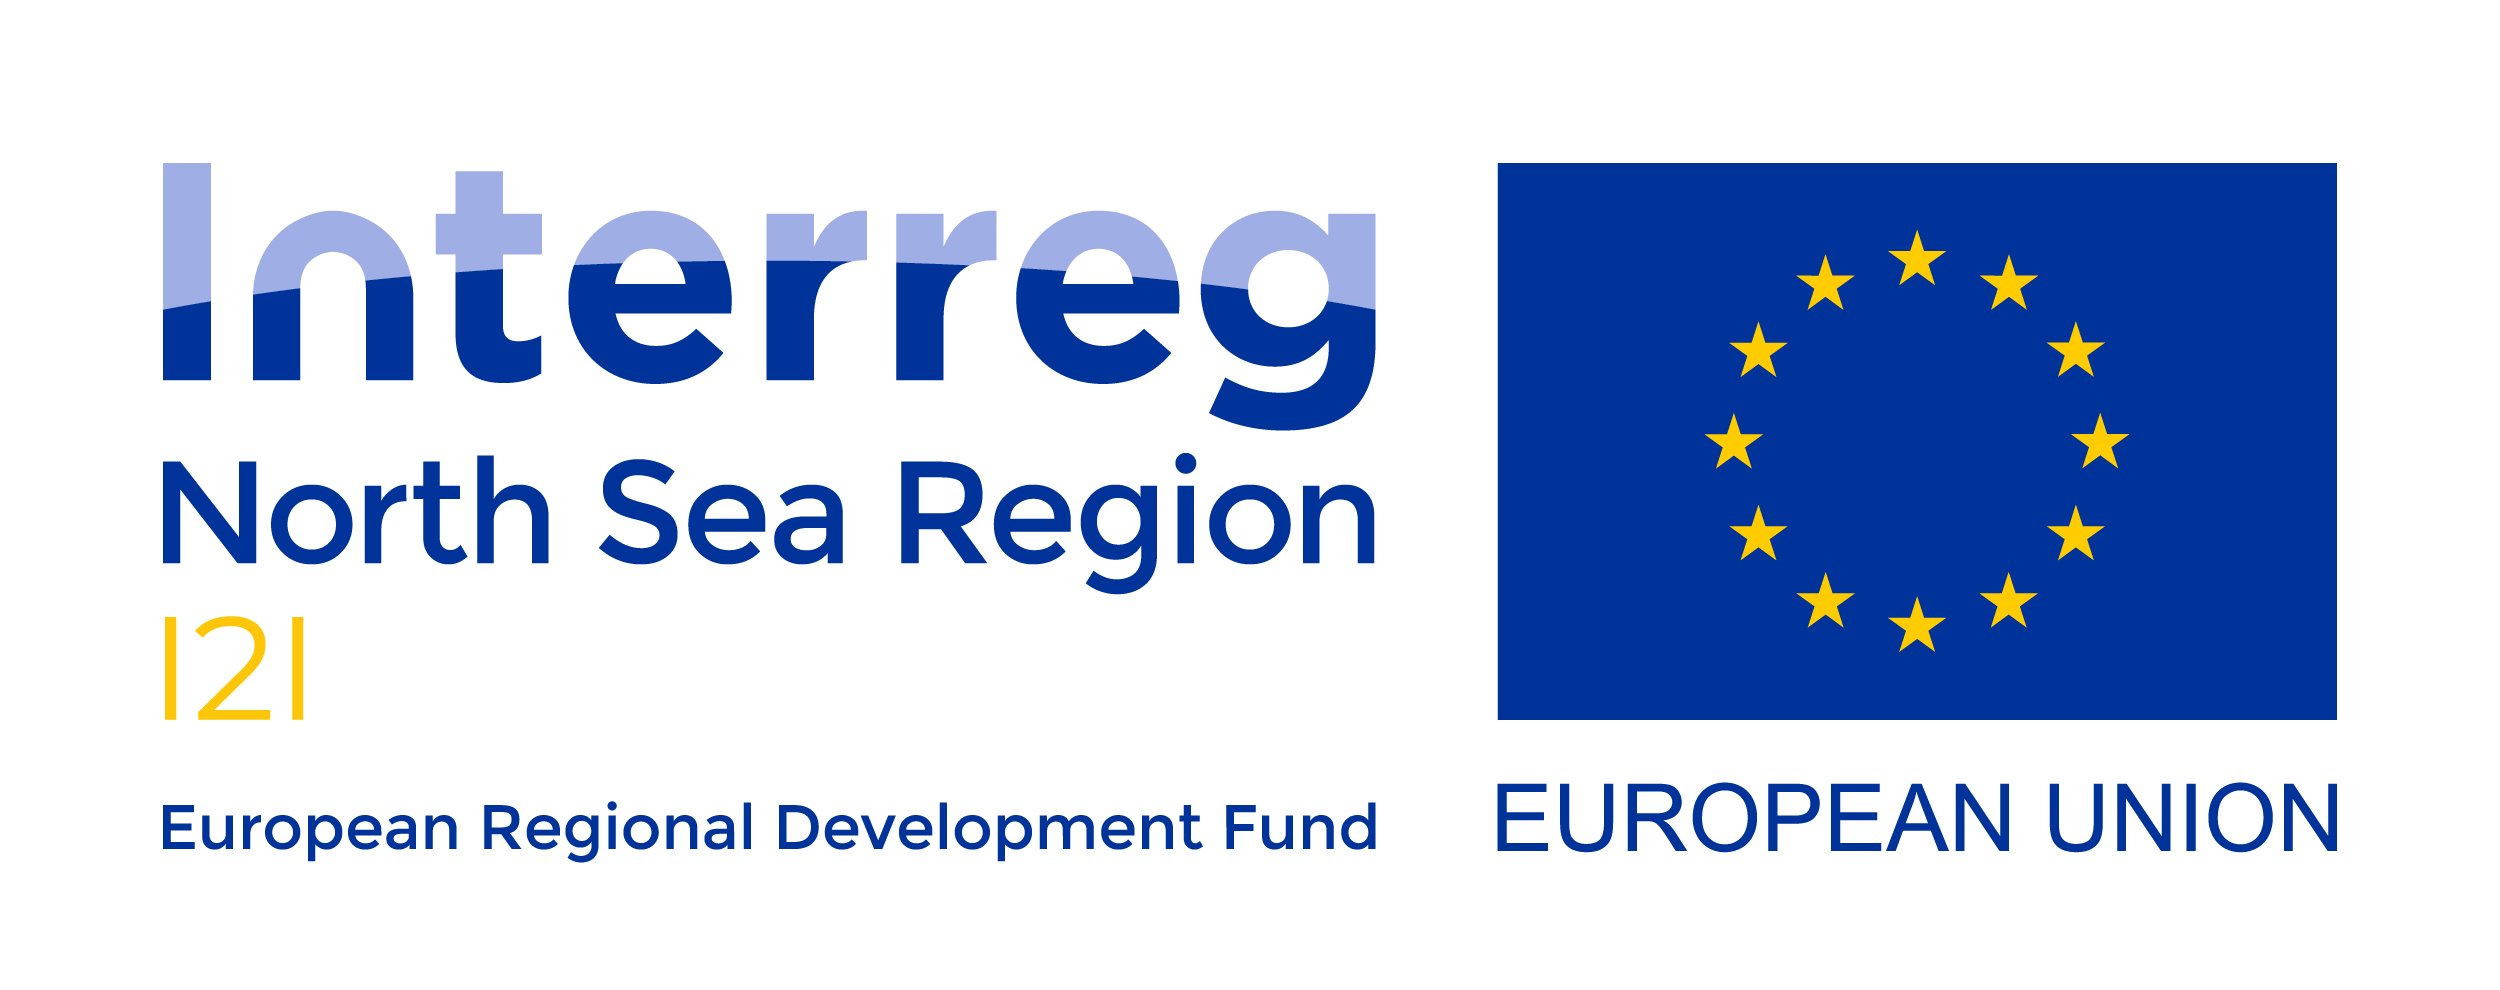 logo Europees Interreg project 121- From Isolation to Inclusion